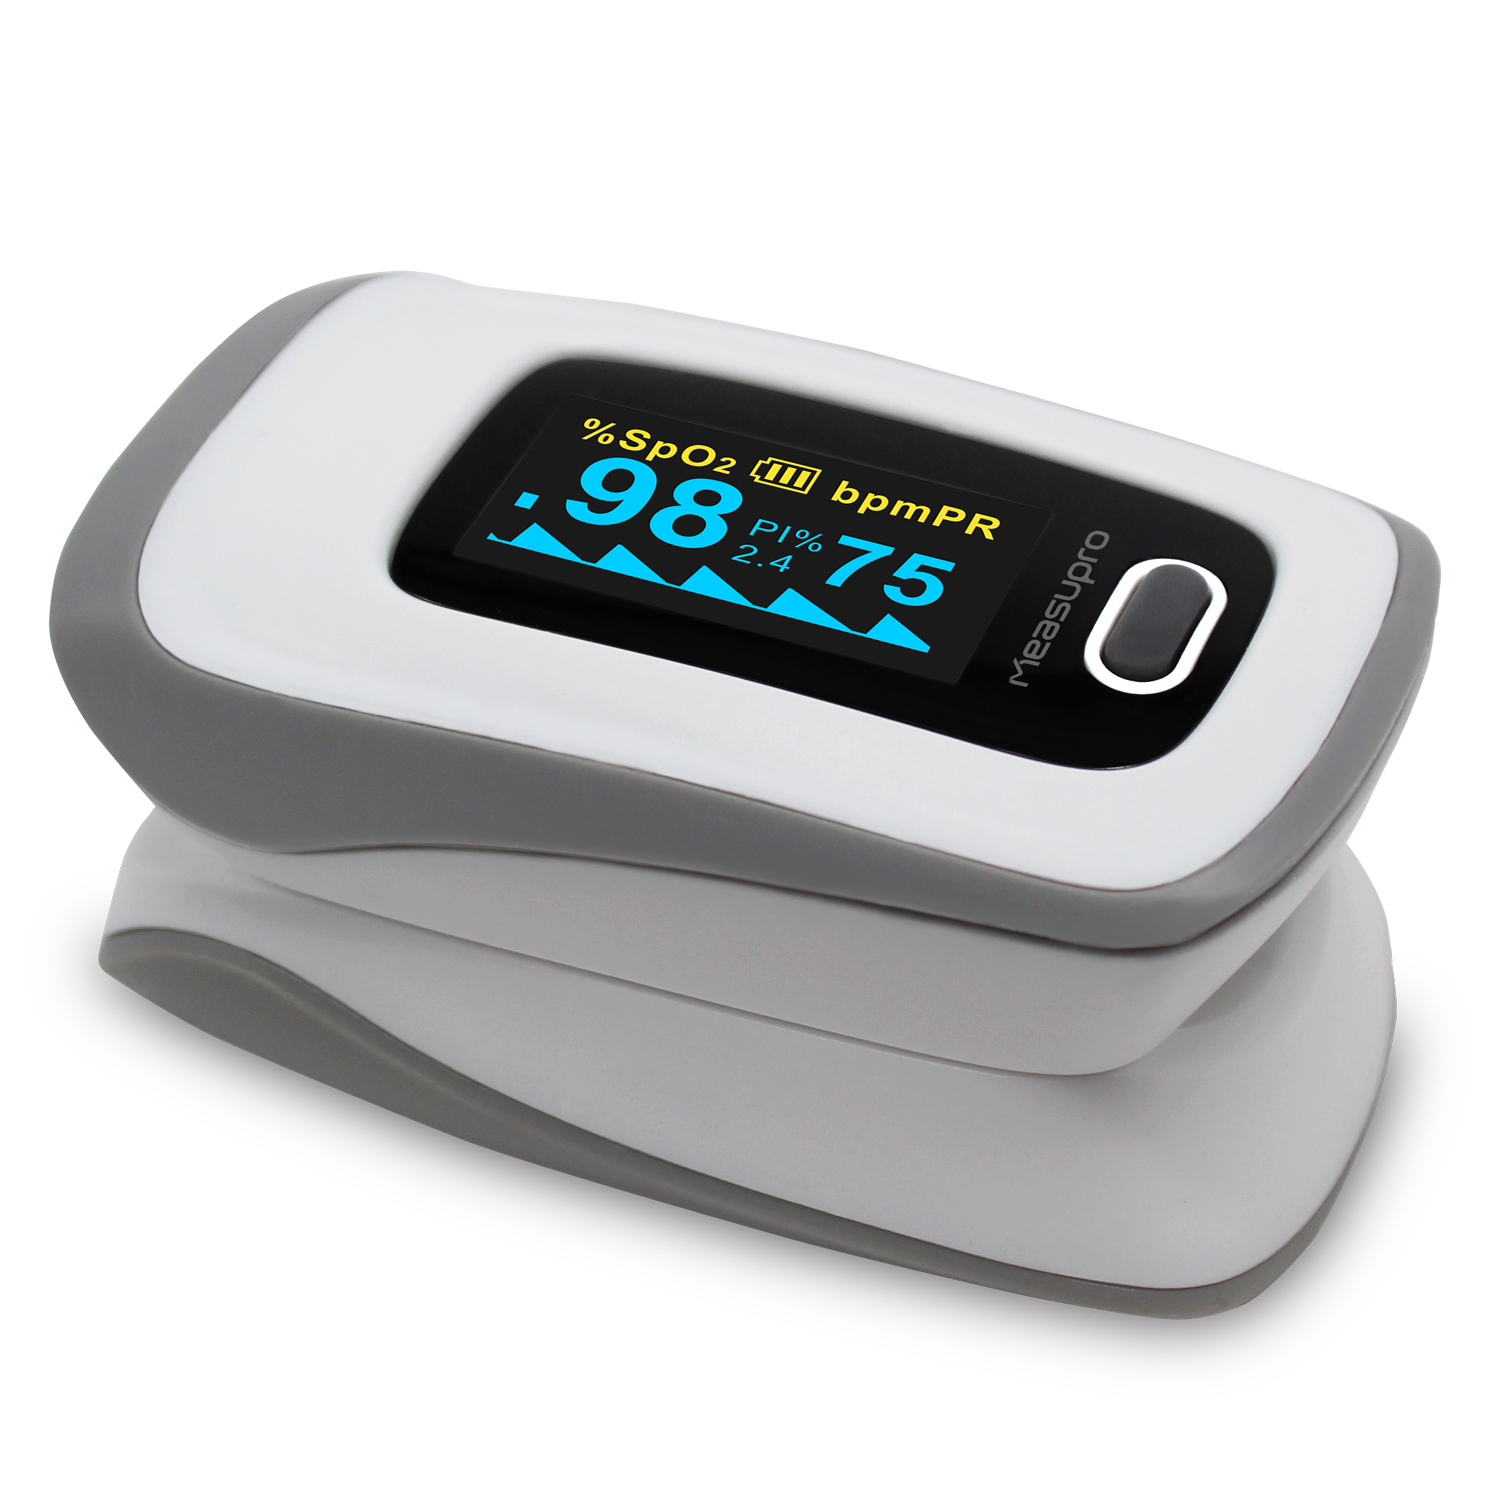 pulse oximeter When you browse our extensive selection of high-quality pulse oximeters, we  have no doubt you'll find one or more that meet your day-to-day healthcare needs.